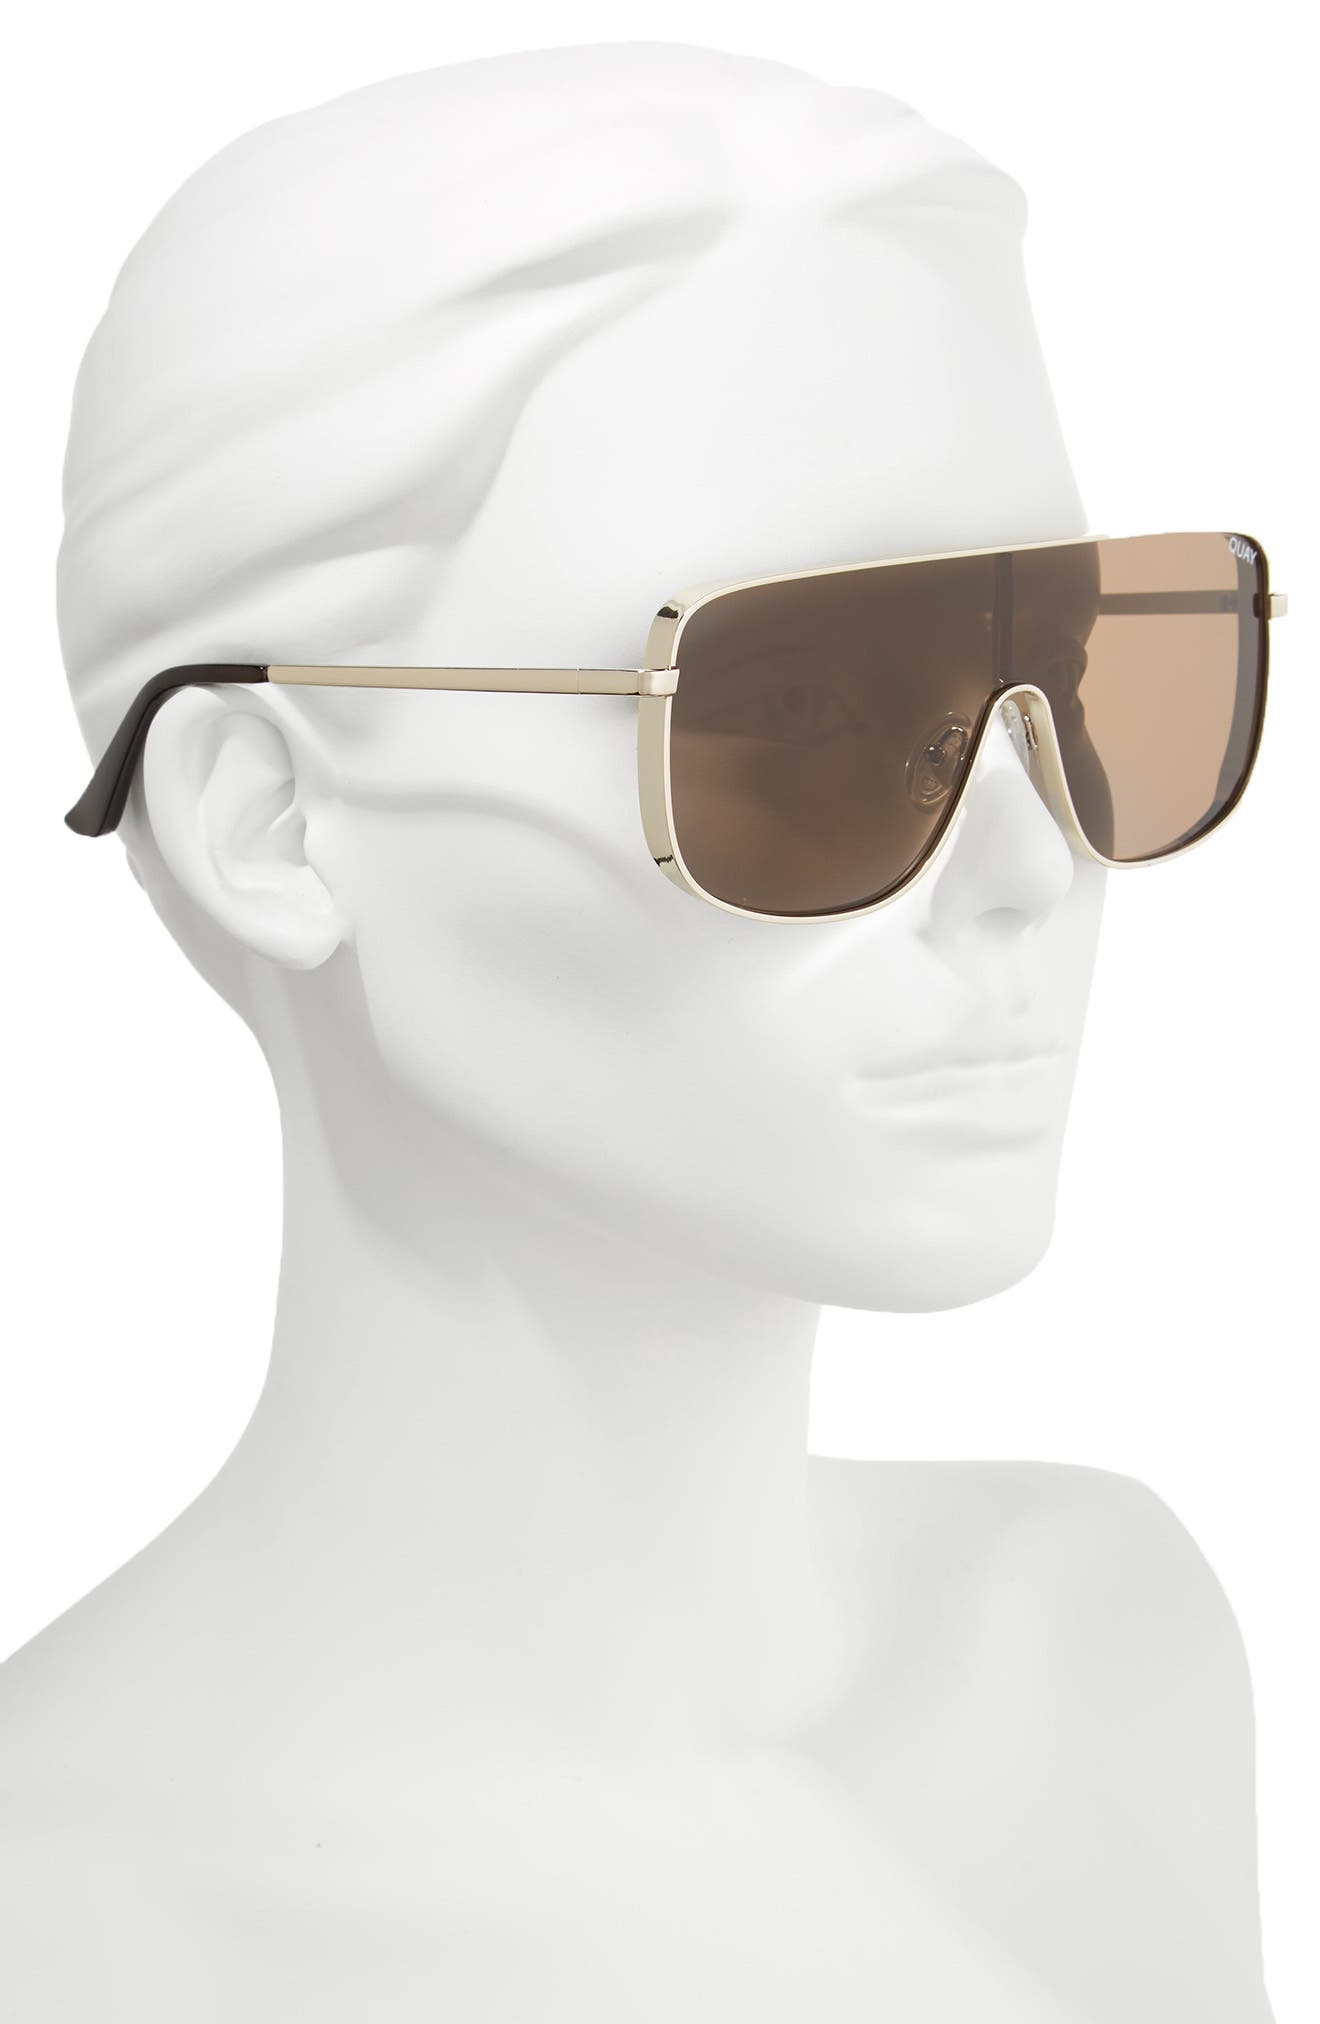 Unbothered 68mm Shield Sunglasses,                             Alternate thumbnail 4, color,